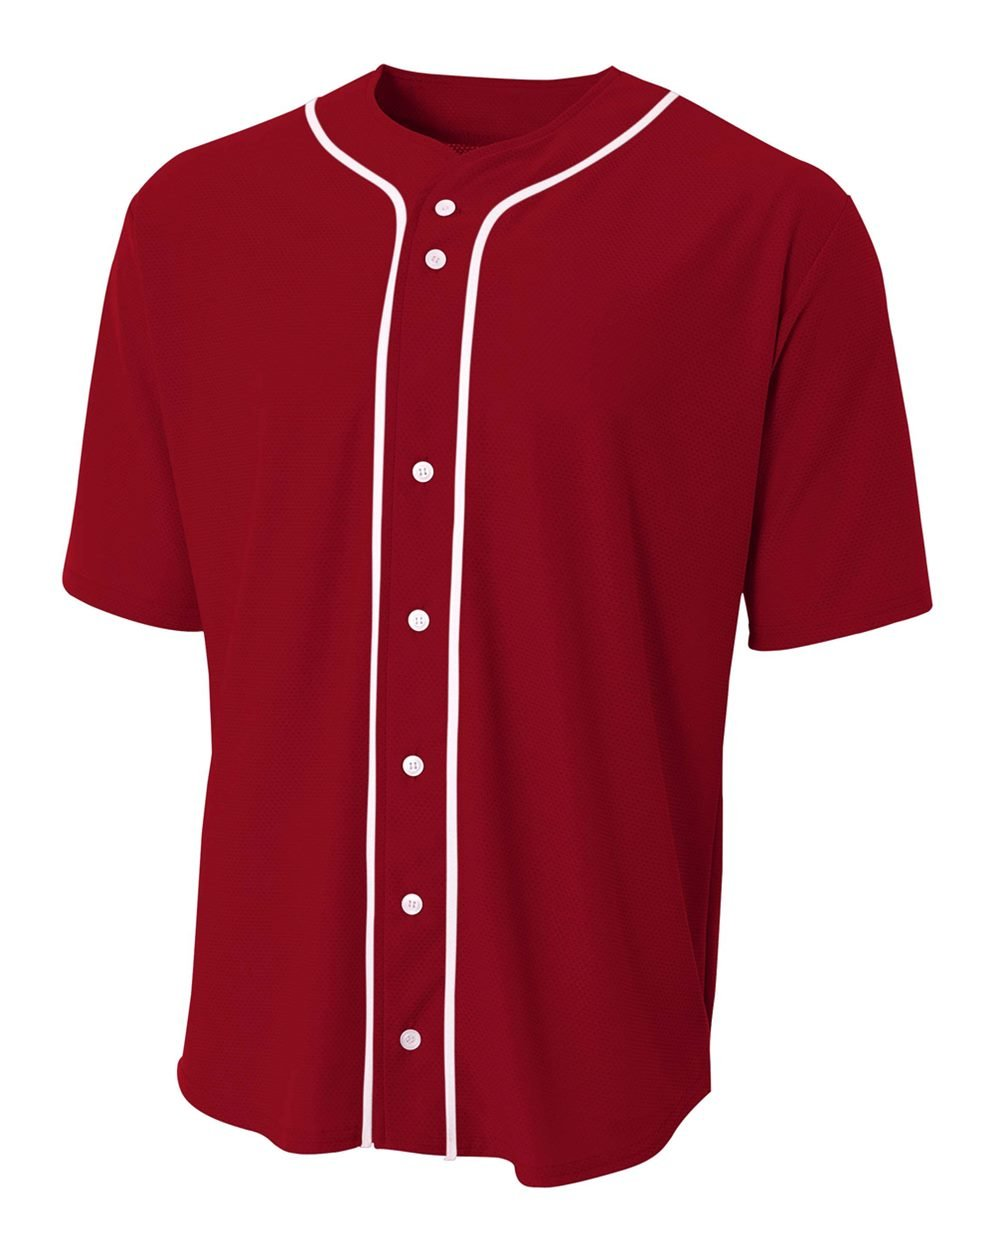 28f8dbf5c Amazon.com : Baseball Full Button Custom or Blank Wicking Jersey (8 Uniform  Colors in 10 Youth & Adult Shirts Sizes) : Clothing